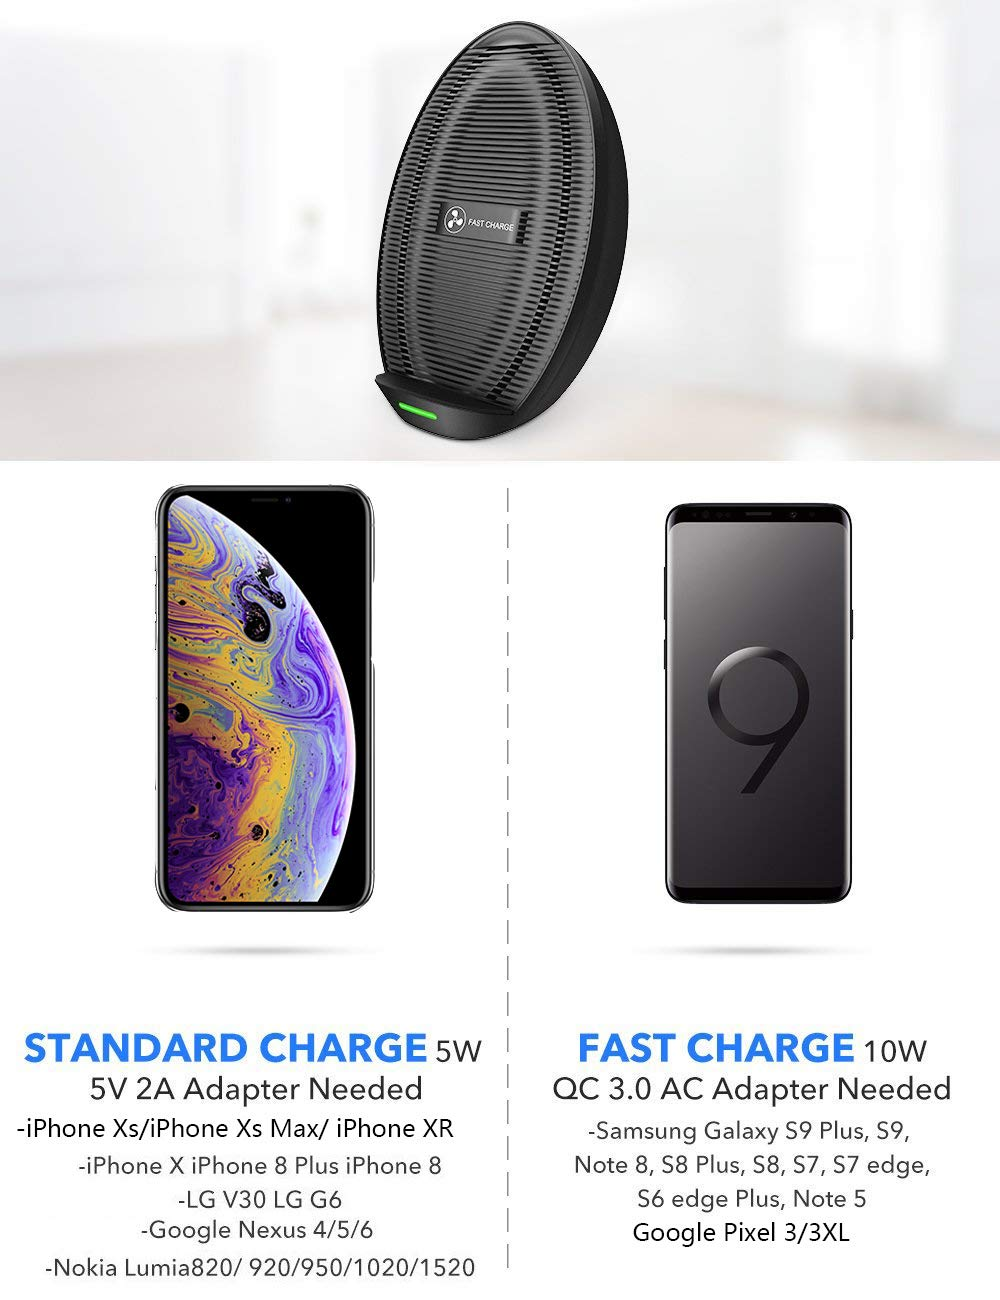 Seneo iPhone XS MAX Wireless Charger, Qi Certified Wireless Charging Stand  Compatible with iPhone XS MAX/XR/XS/X/8/8 Plus, 10W for Galaxy Note 9/S9/S9